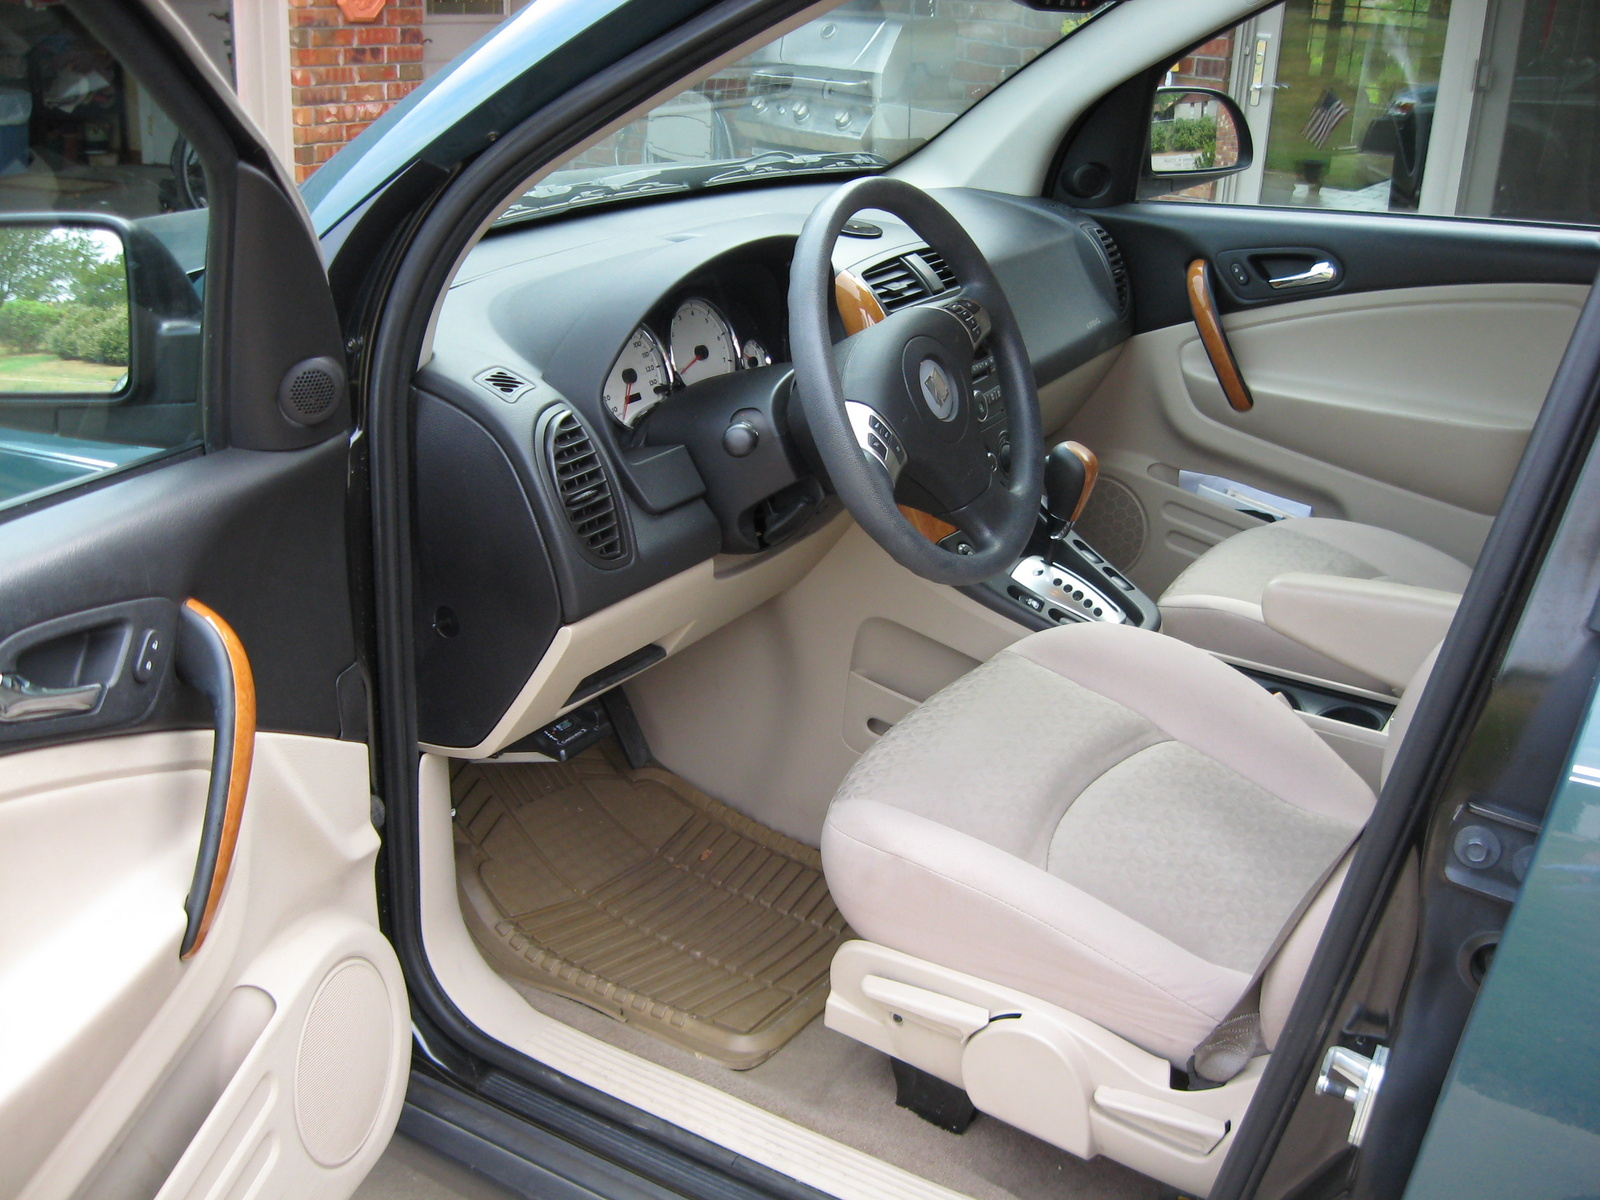 2006 saturn vue information and photos zombiedrive 2006 saturn vue 15 saturn vue 15 vanachro Gallery